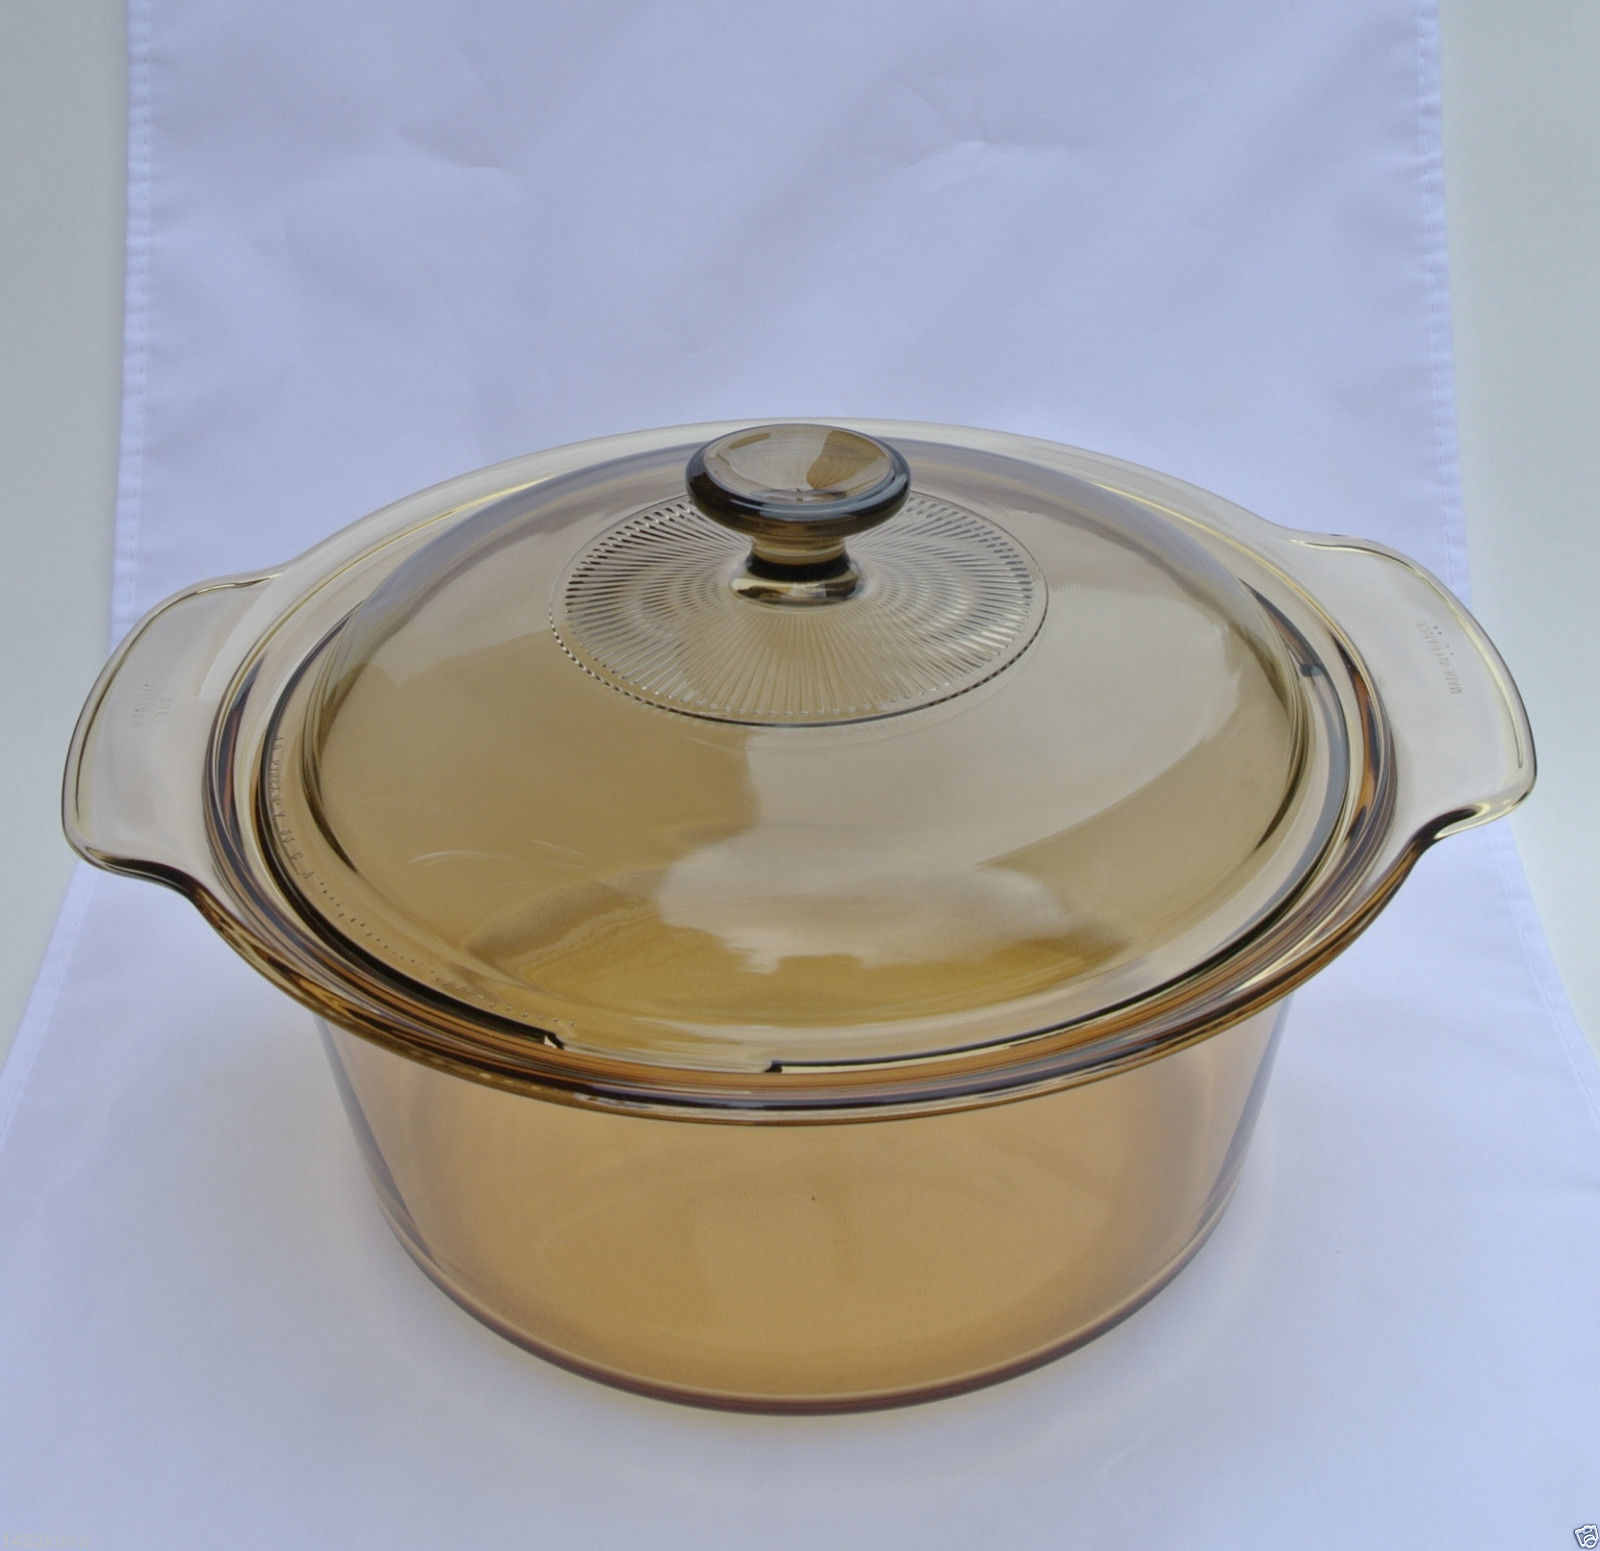 Visions Cookware Pyrex 3.5L Round Dutch Oven With Lid